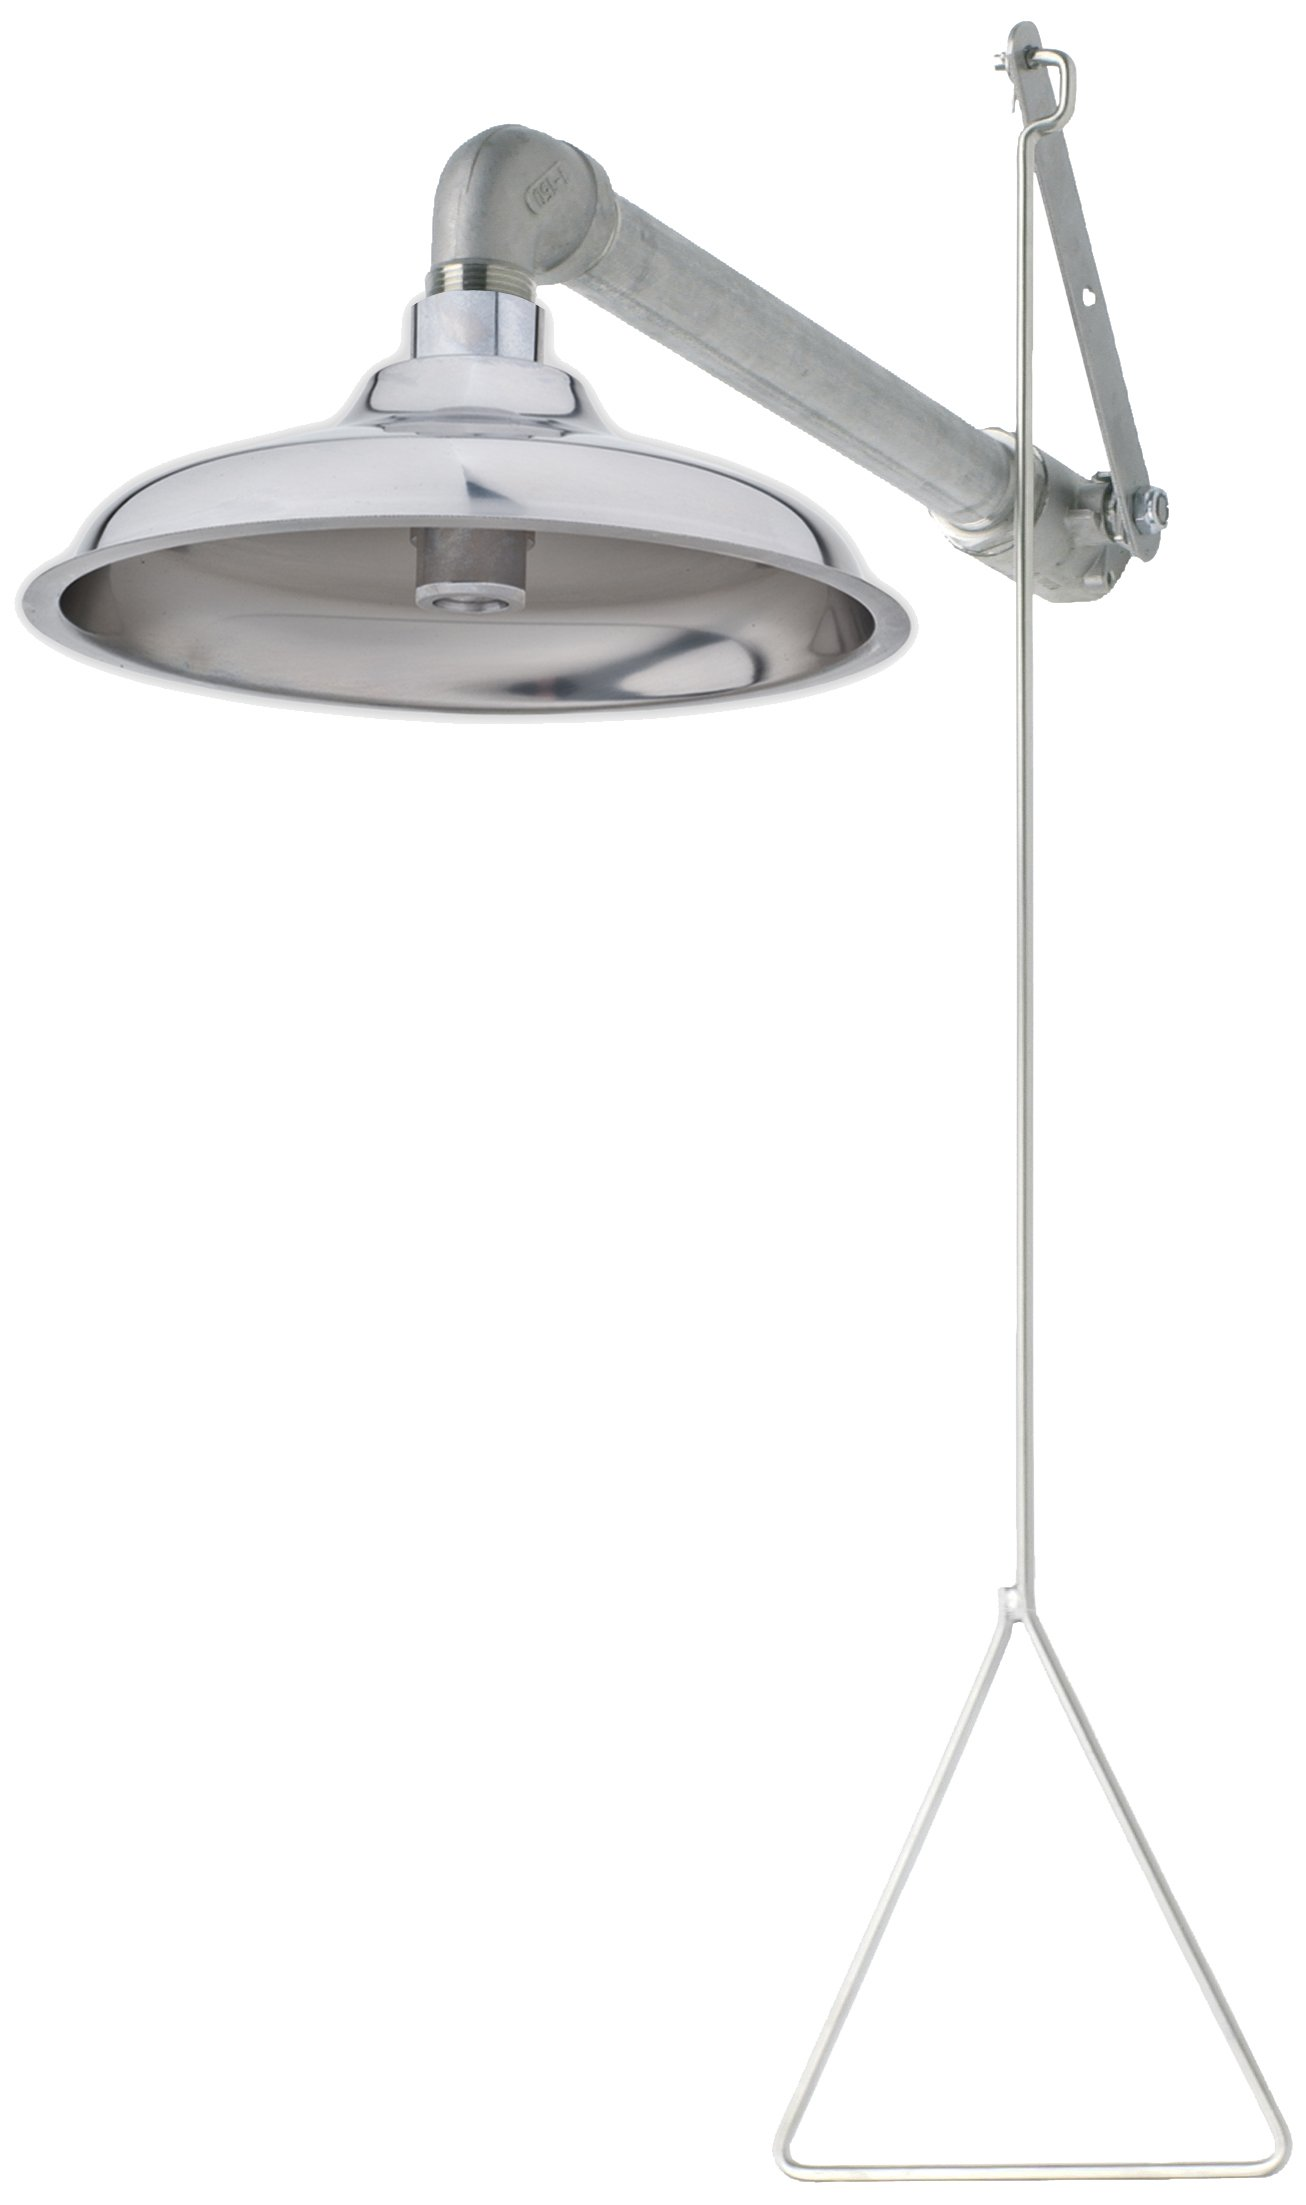 Haws 8133H Horizontal Overhead Drench Shower with Axion MSR Stainless Steel Showerhead